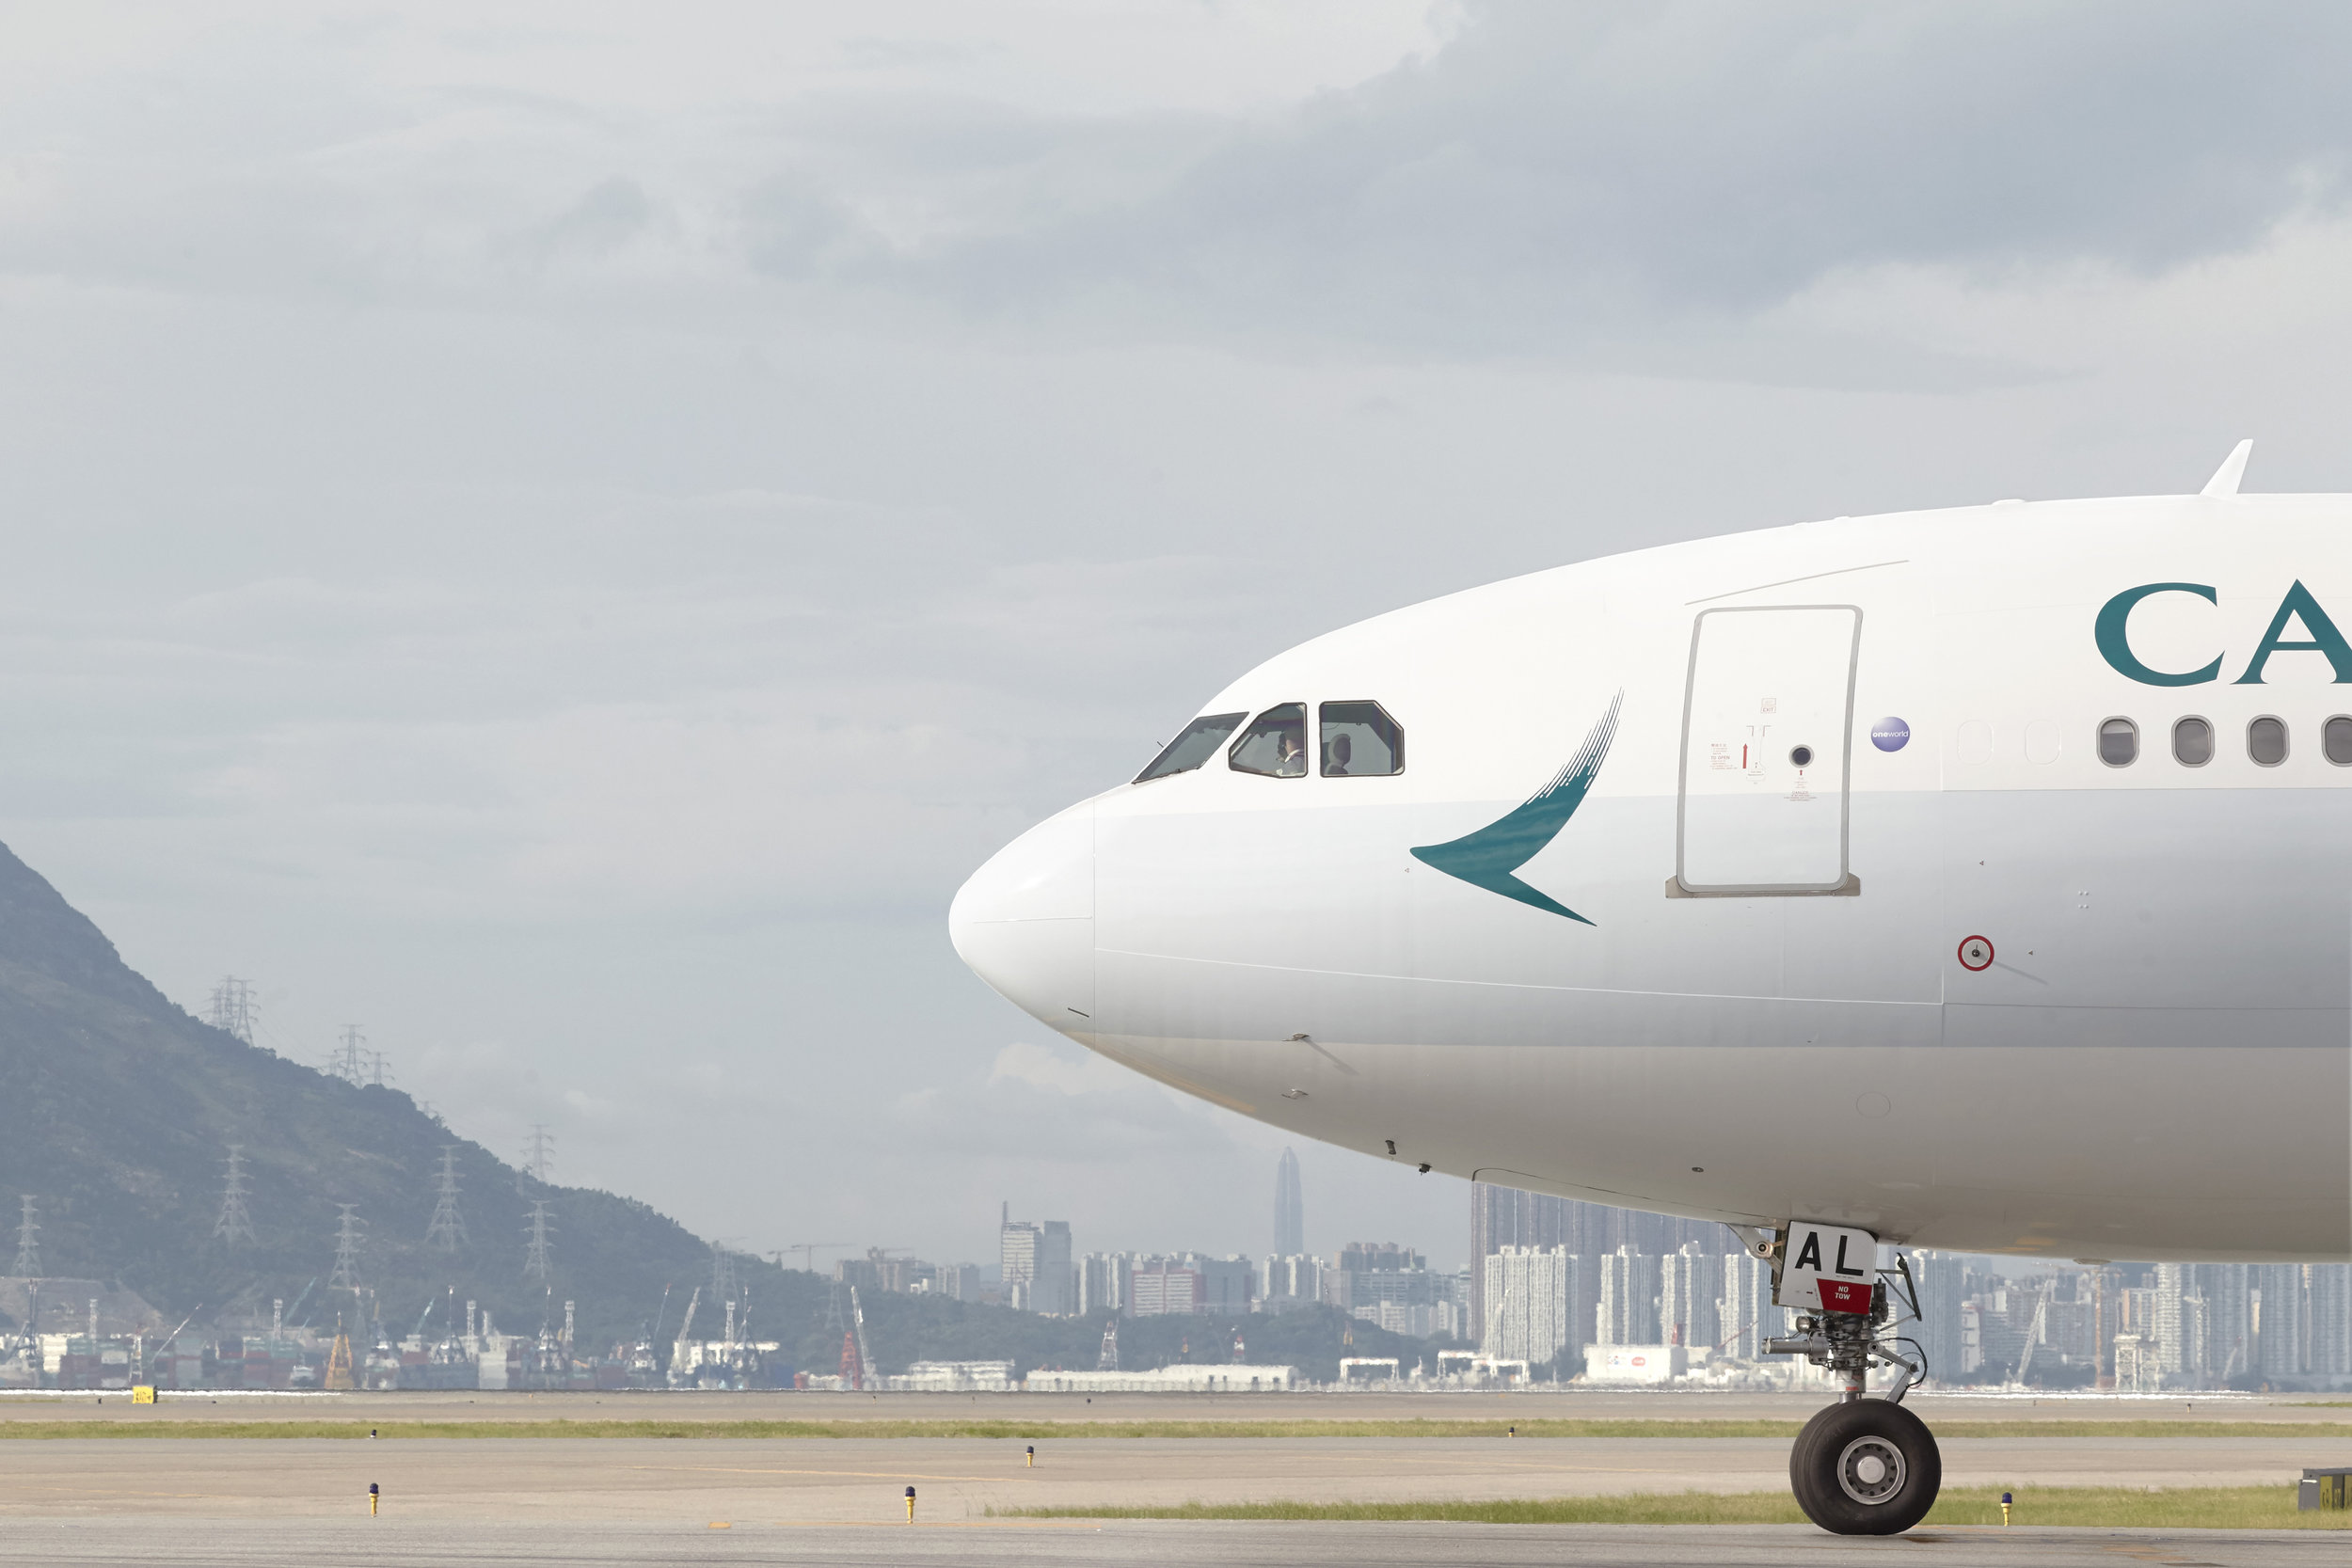 Cathay Pacific A330-300